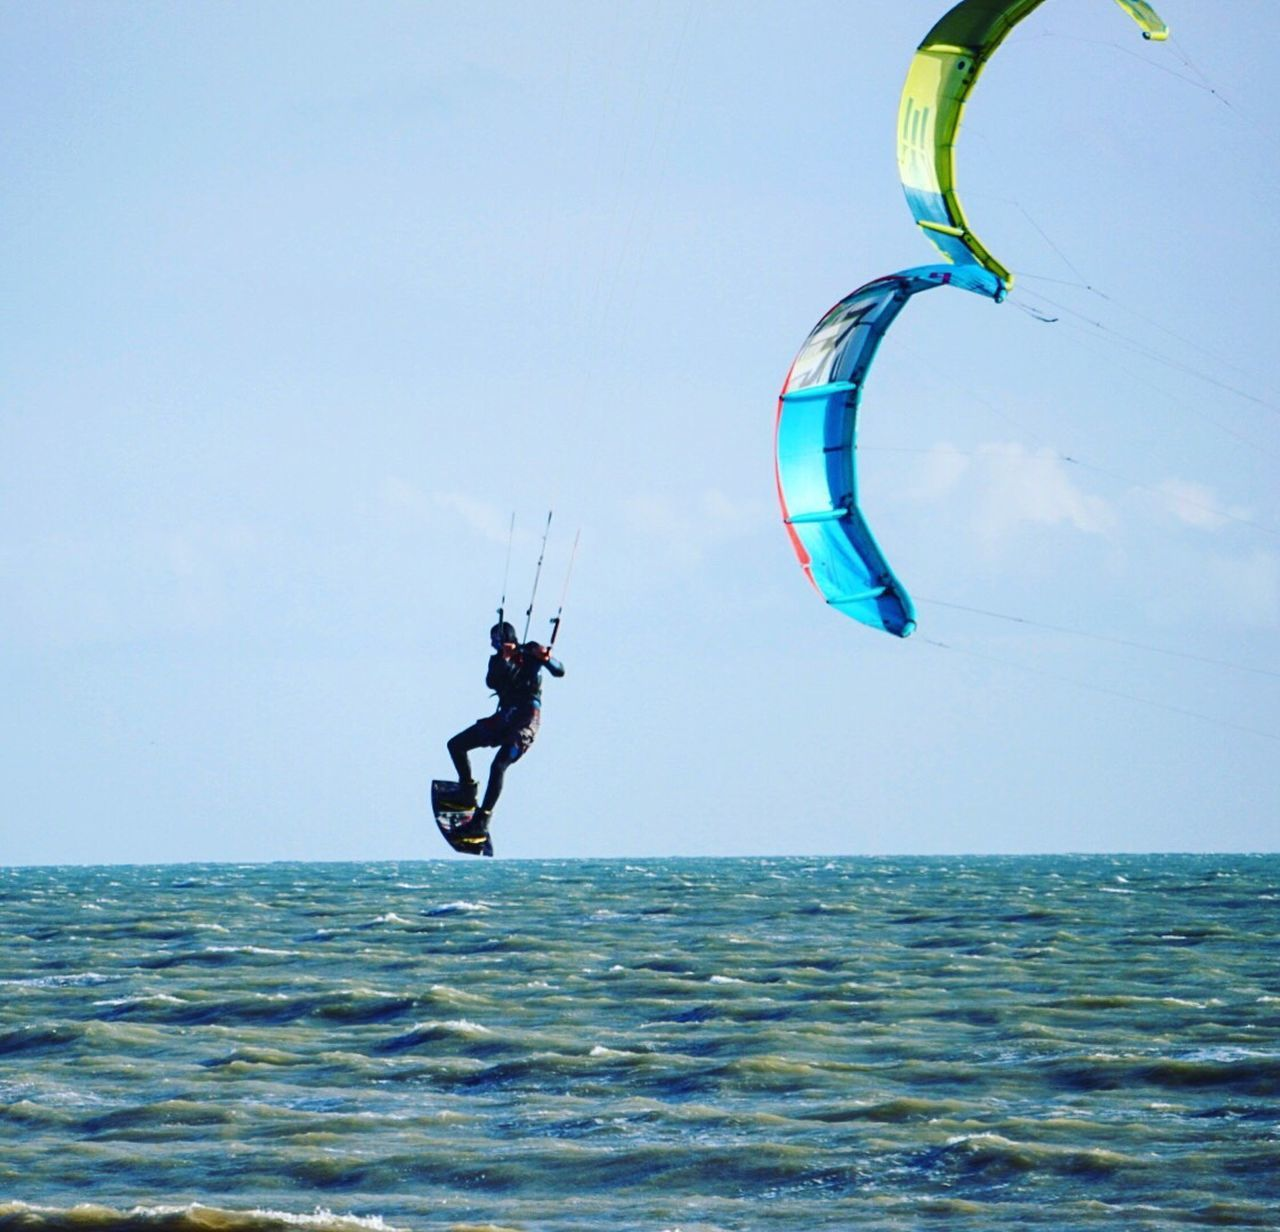 Kitesurfing 9 Sea Water Real People Mid-air Lifestyles Men Horizon Over Water Sky Blue Clear Sky Outdoors Flying Leisure Activity Fun One Person Full Length Nature Day Nautical Vessel Jumping Kitesurfing Worthing Kiteboarding Extreme Sports